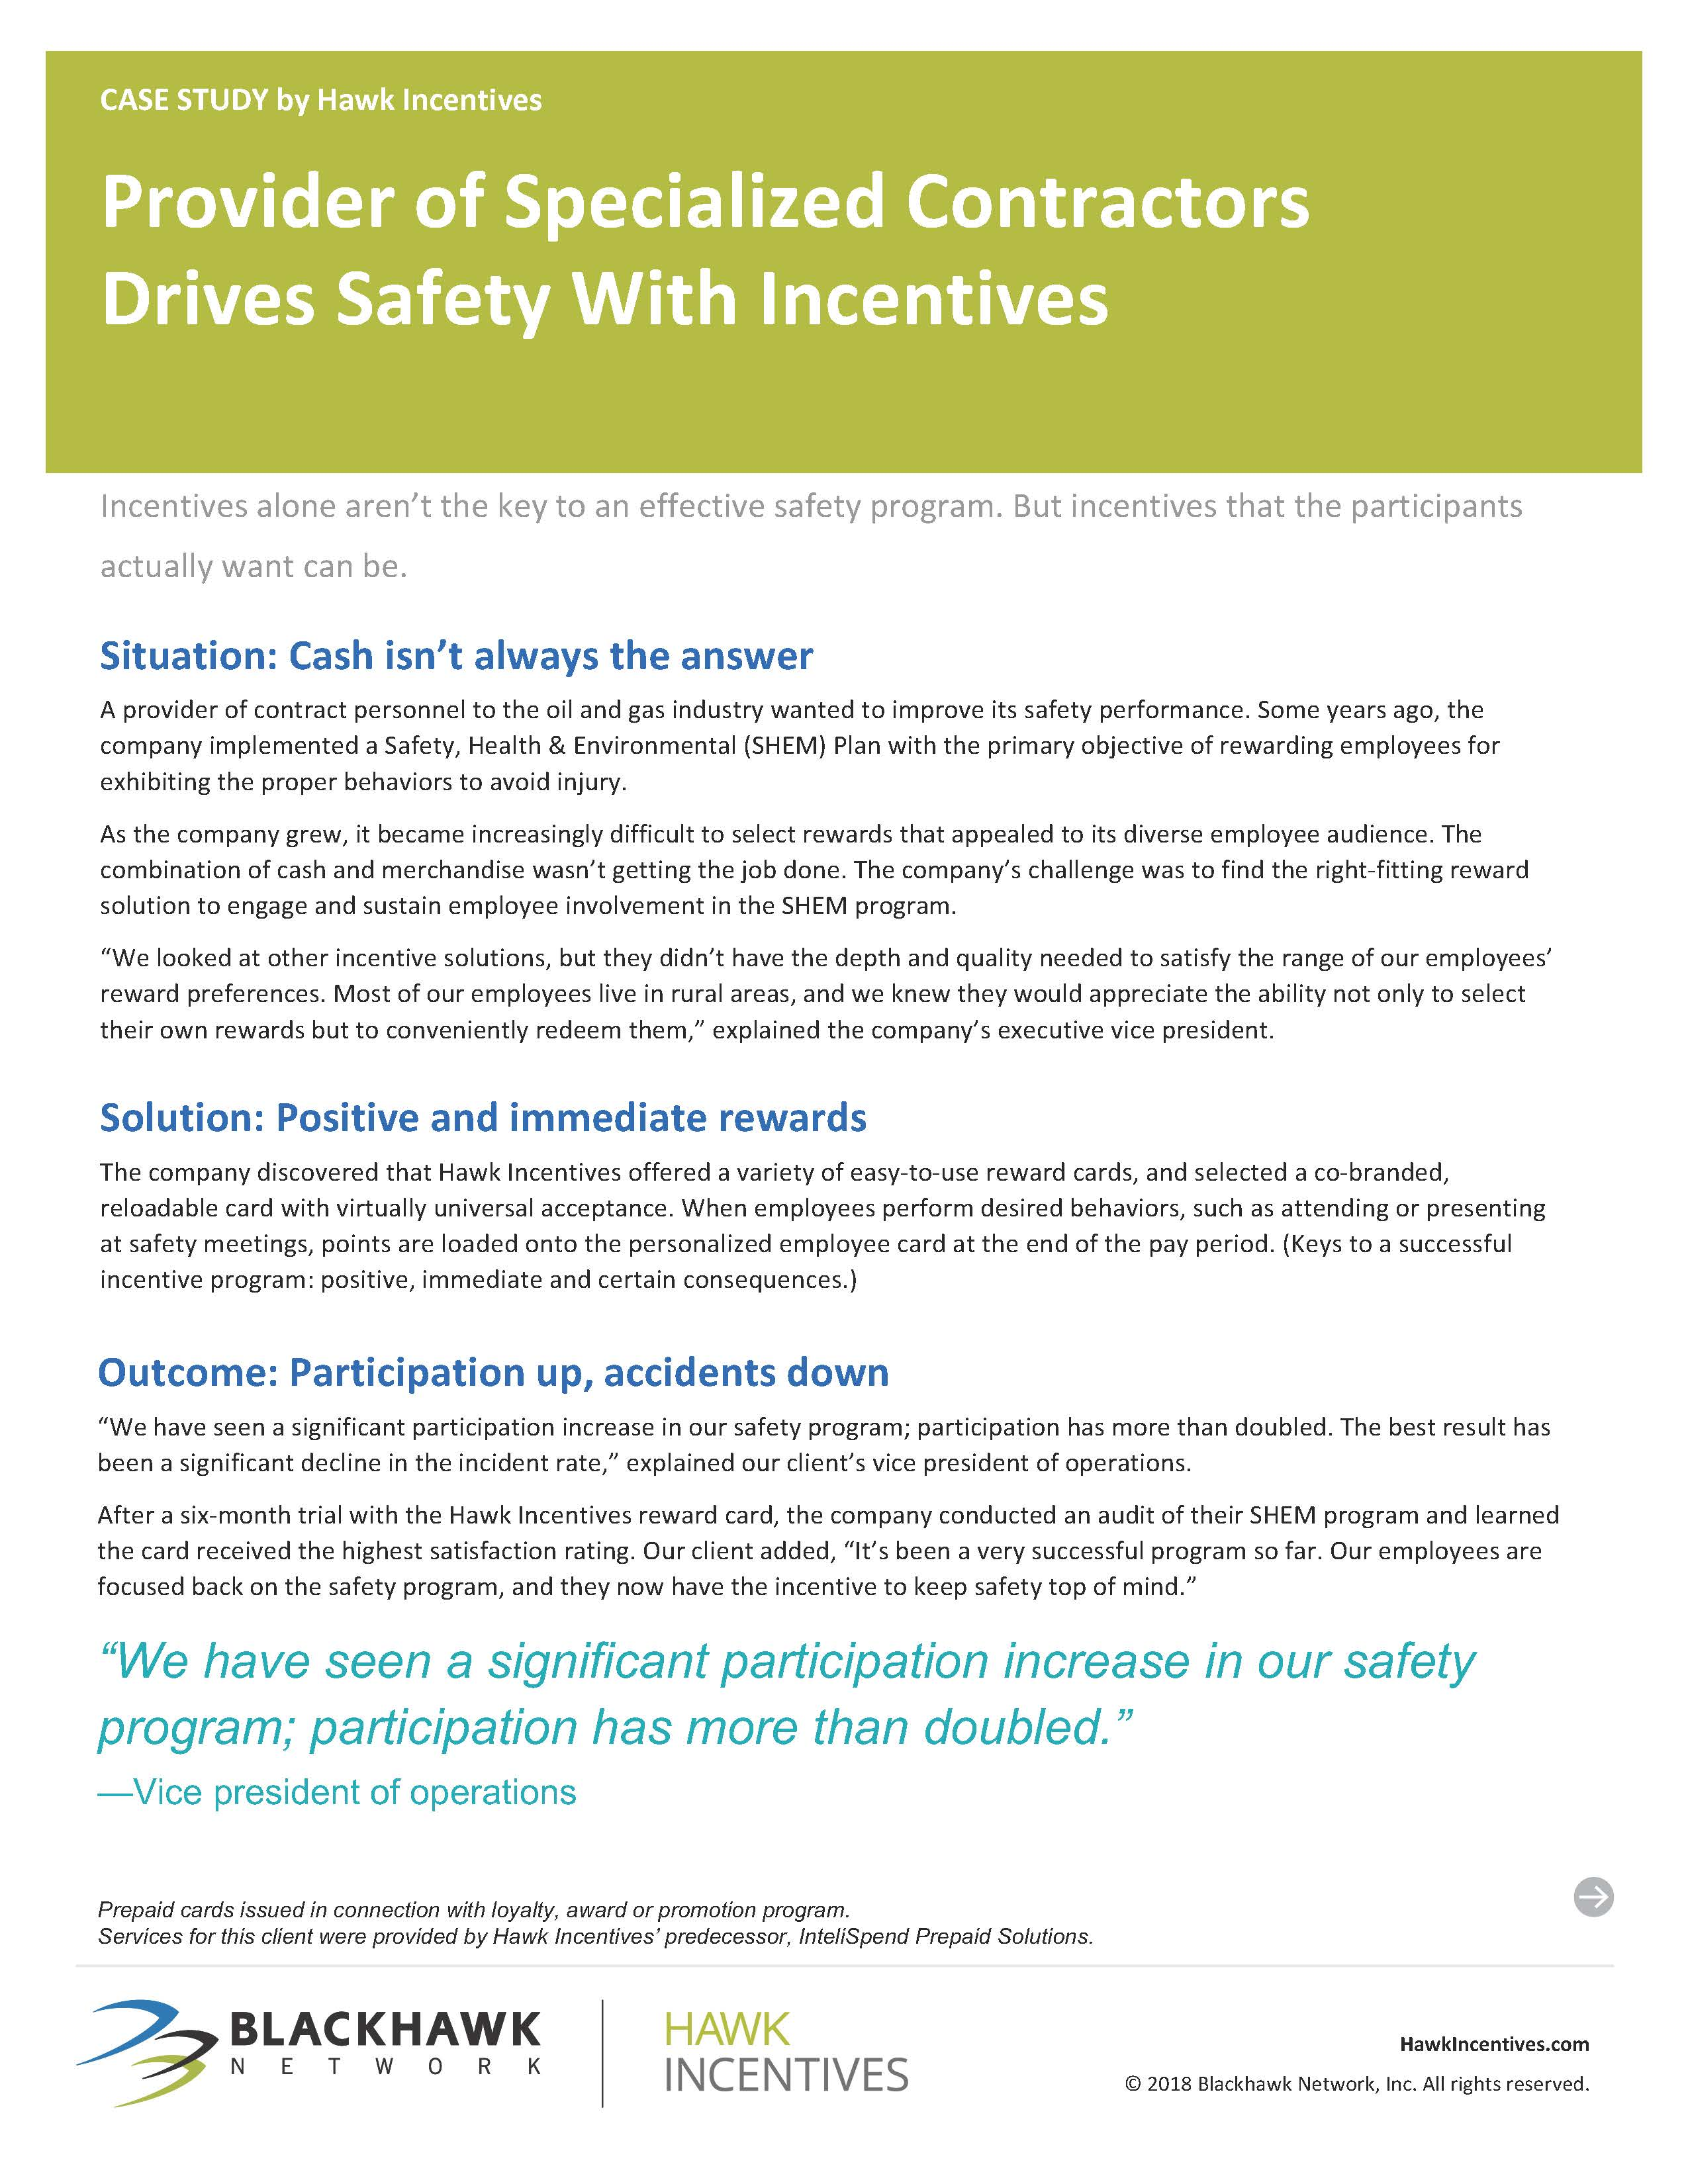 Provider of Specialized Contractors Drives Safety With Incentives